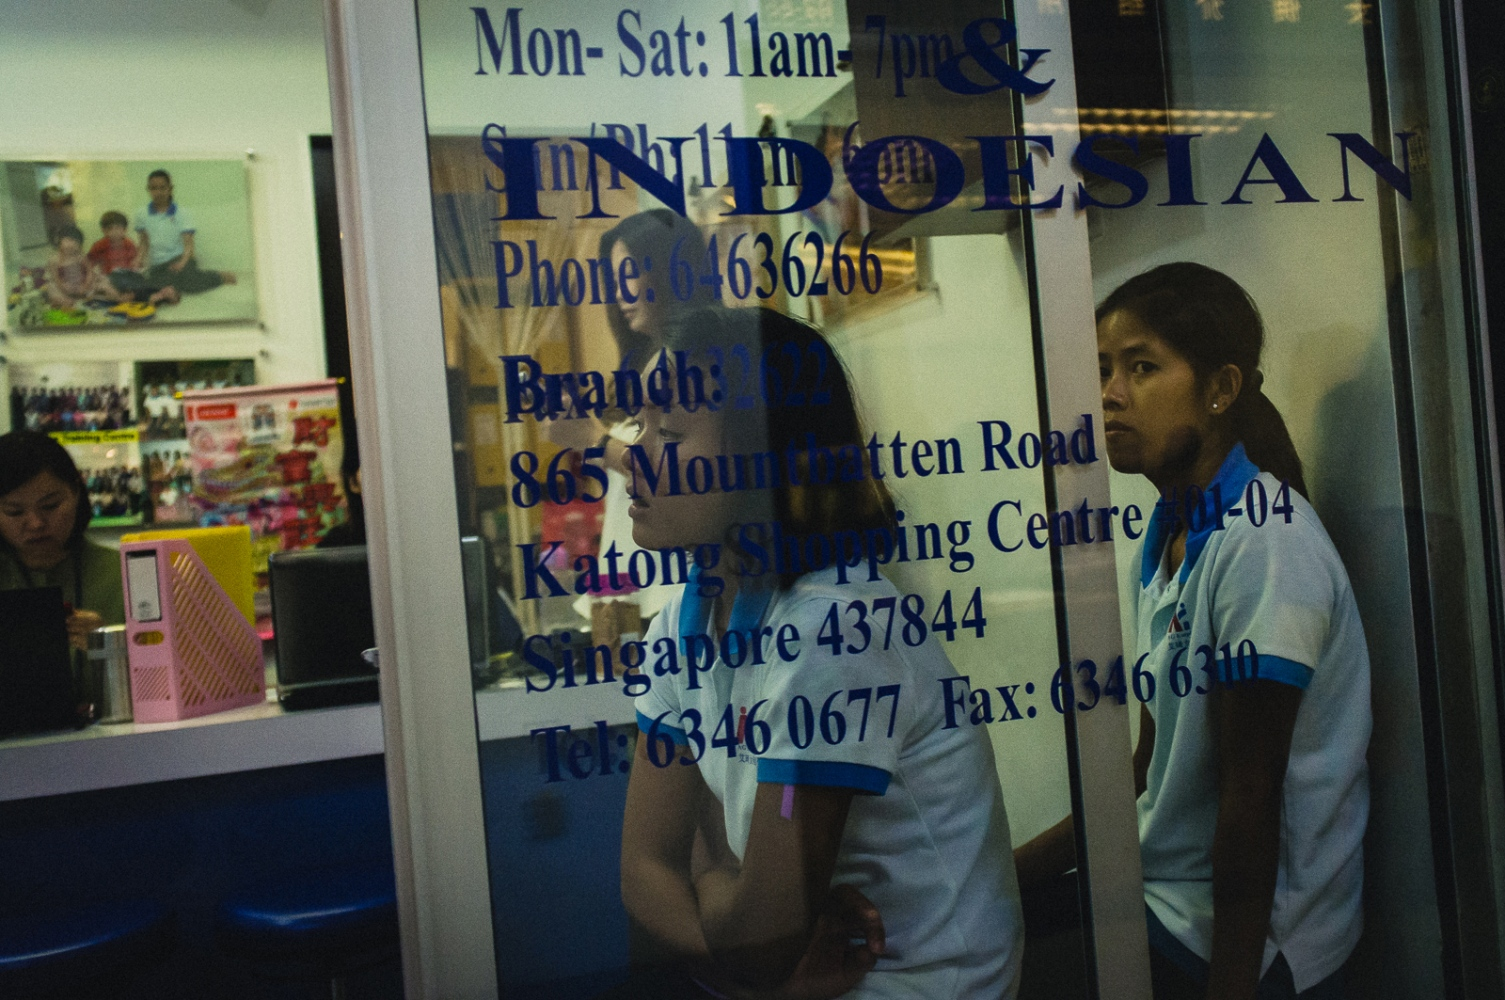 Women seeking employment as foreign domestic workers in Singapore seen through the window of a 'Maid Agency' in a shopping centre in Singapore. While agencies are occasionally able to offer help and support to foreign domestic workers, exploitative practices are not uncommon, and the Singapore governemnt has been criticised for not not being proactive enough in enforcing regulations and legislation relating to the industry.